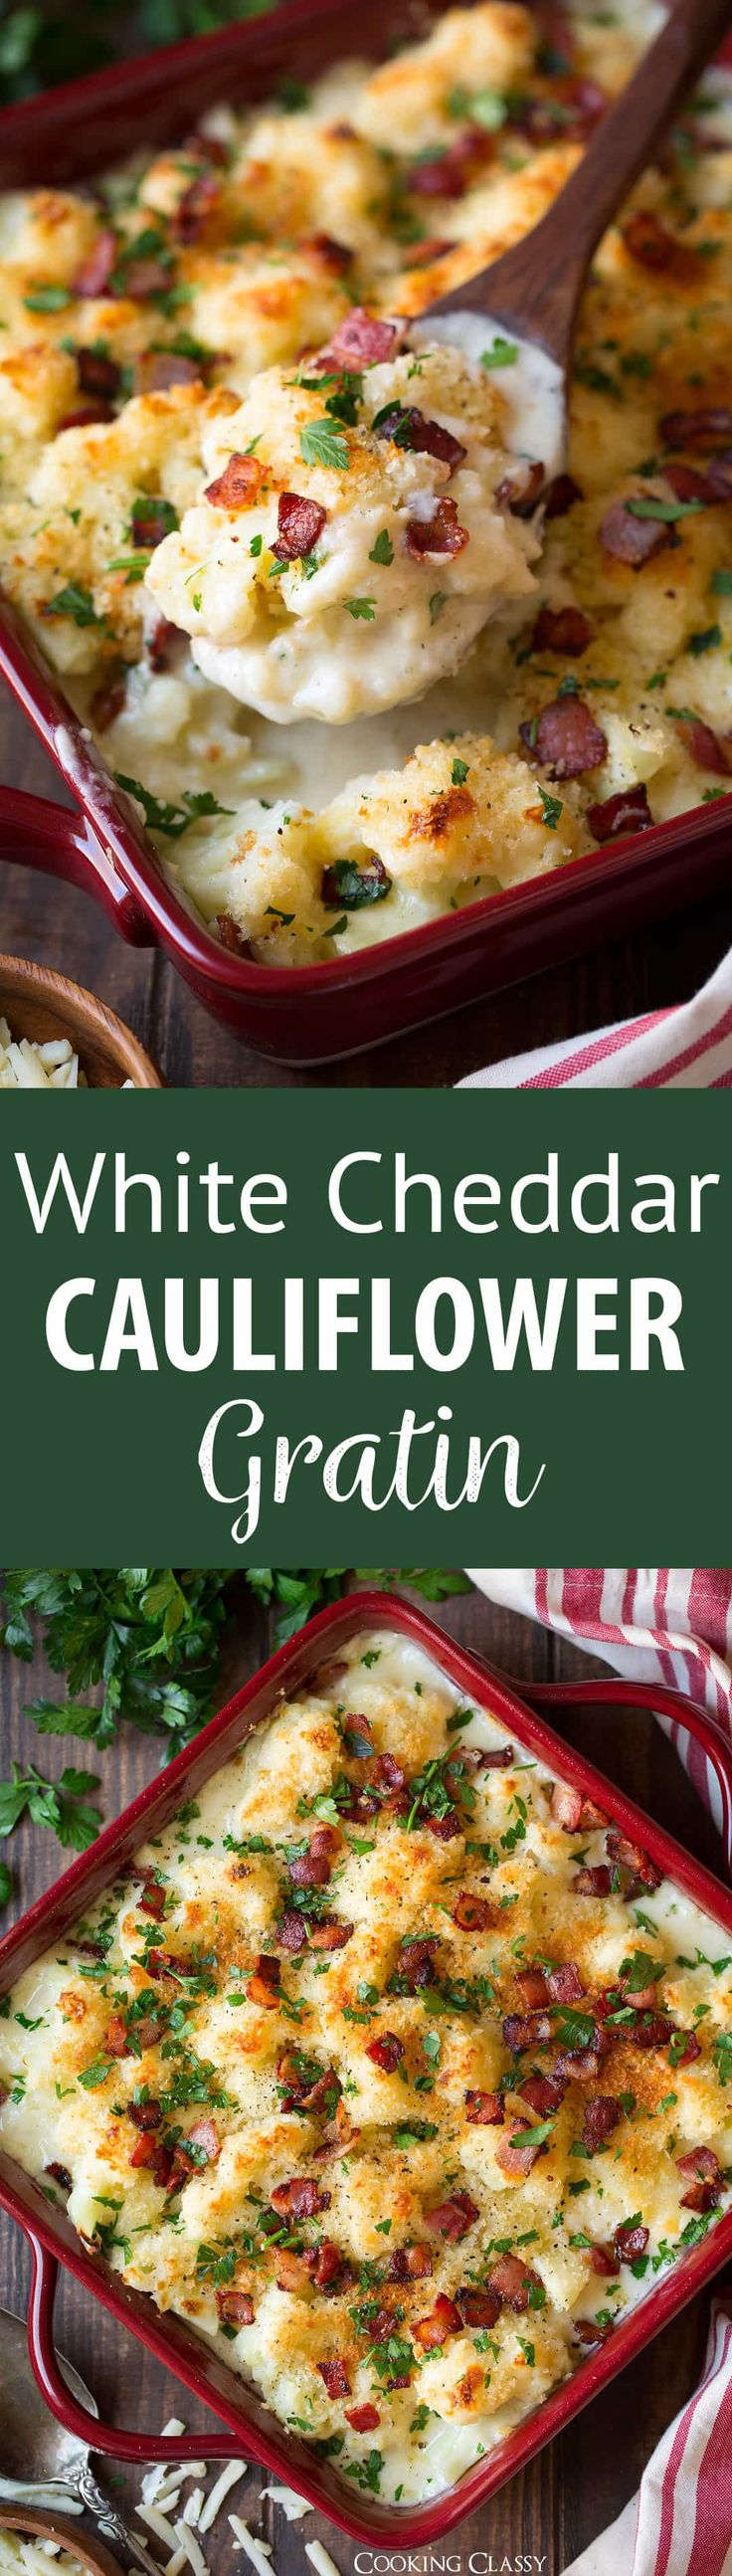 White Cheddar Cauliflower Gratin - Cauliflower coated with cheesy sauce, covered with Panko and bacon